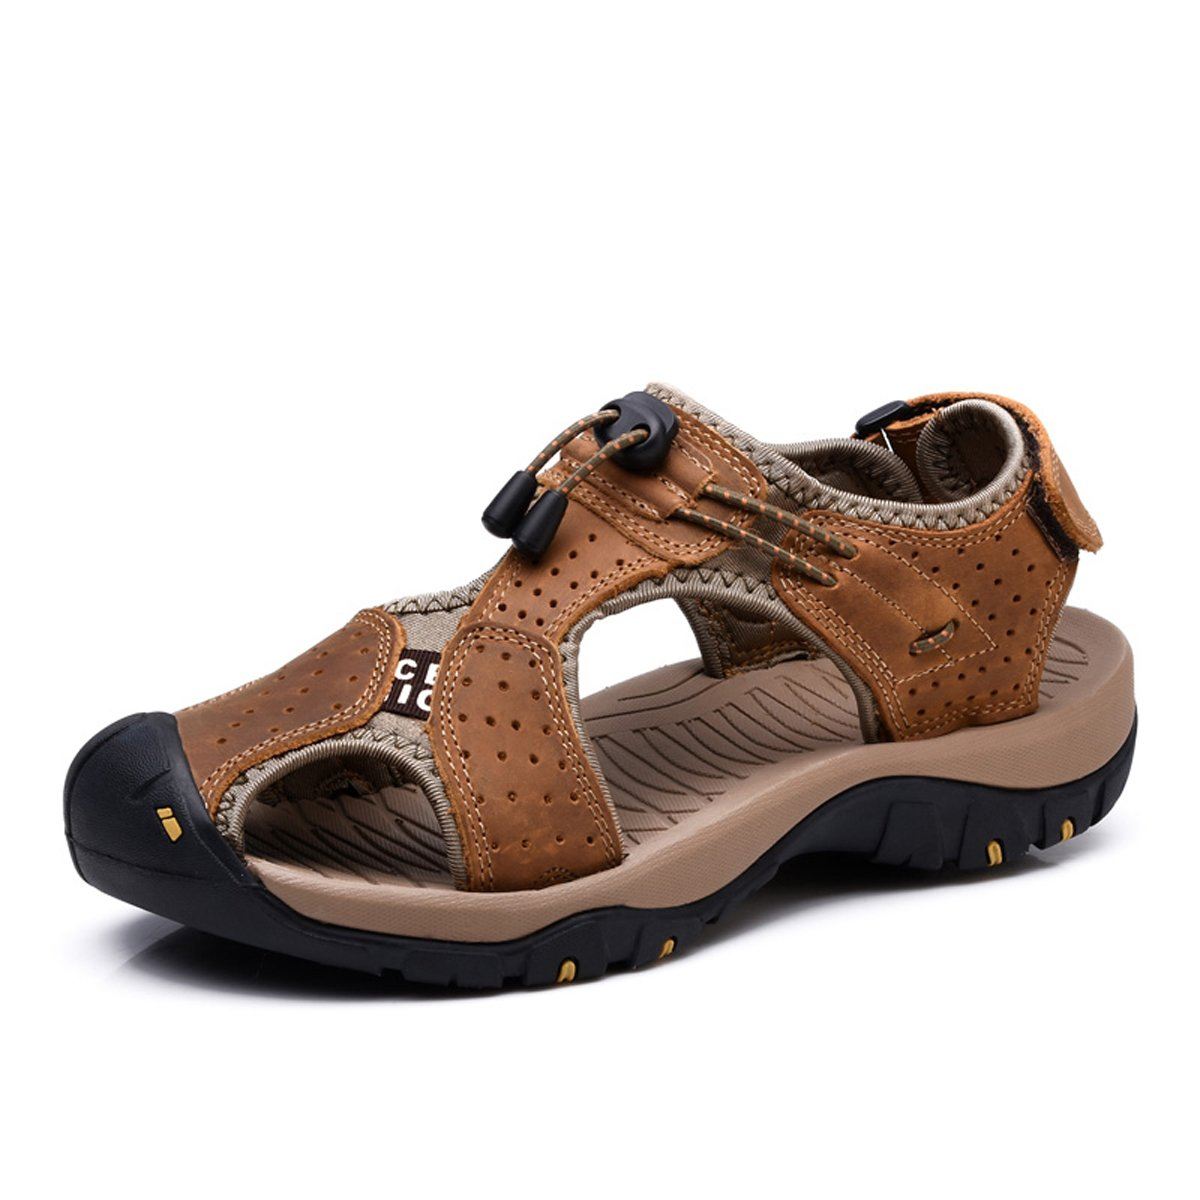 VENSHINE Mens Sports Sandals Summer Leather Outdoor Fisherman Beach Athletics Walking Hiking Sandals